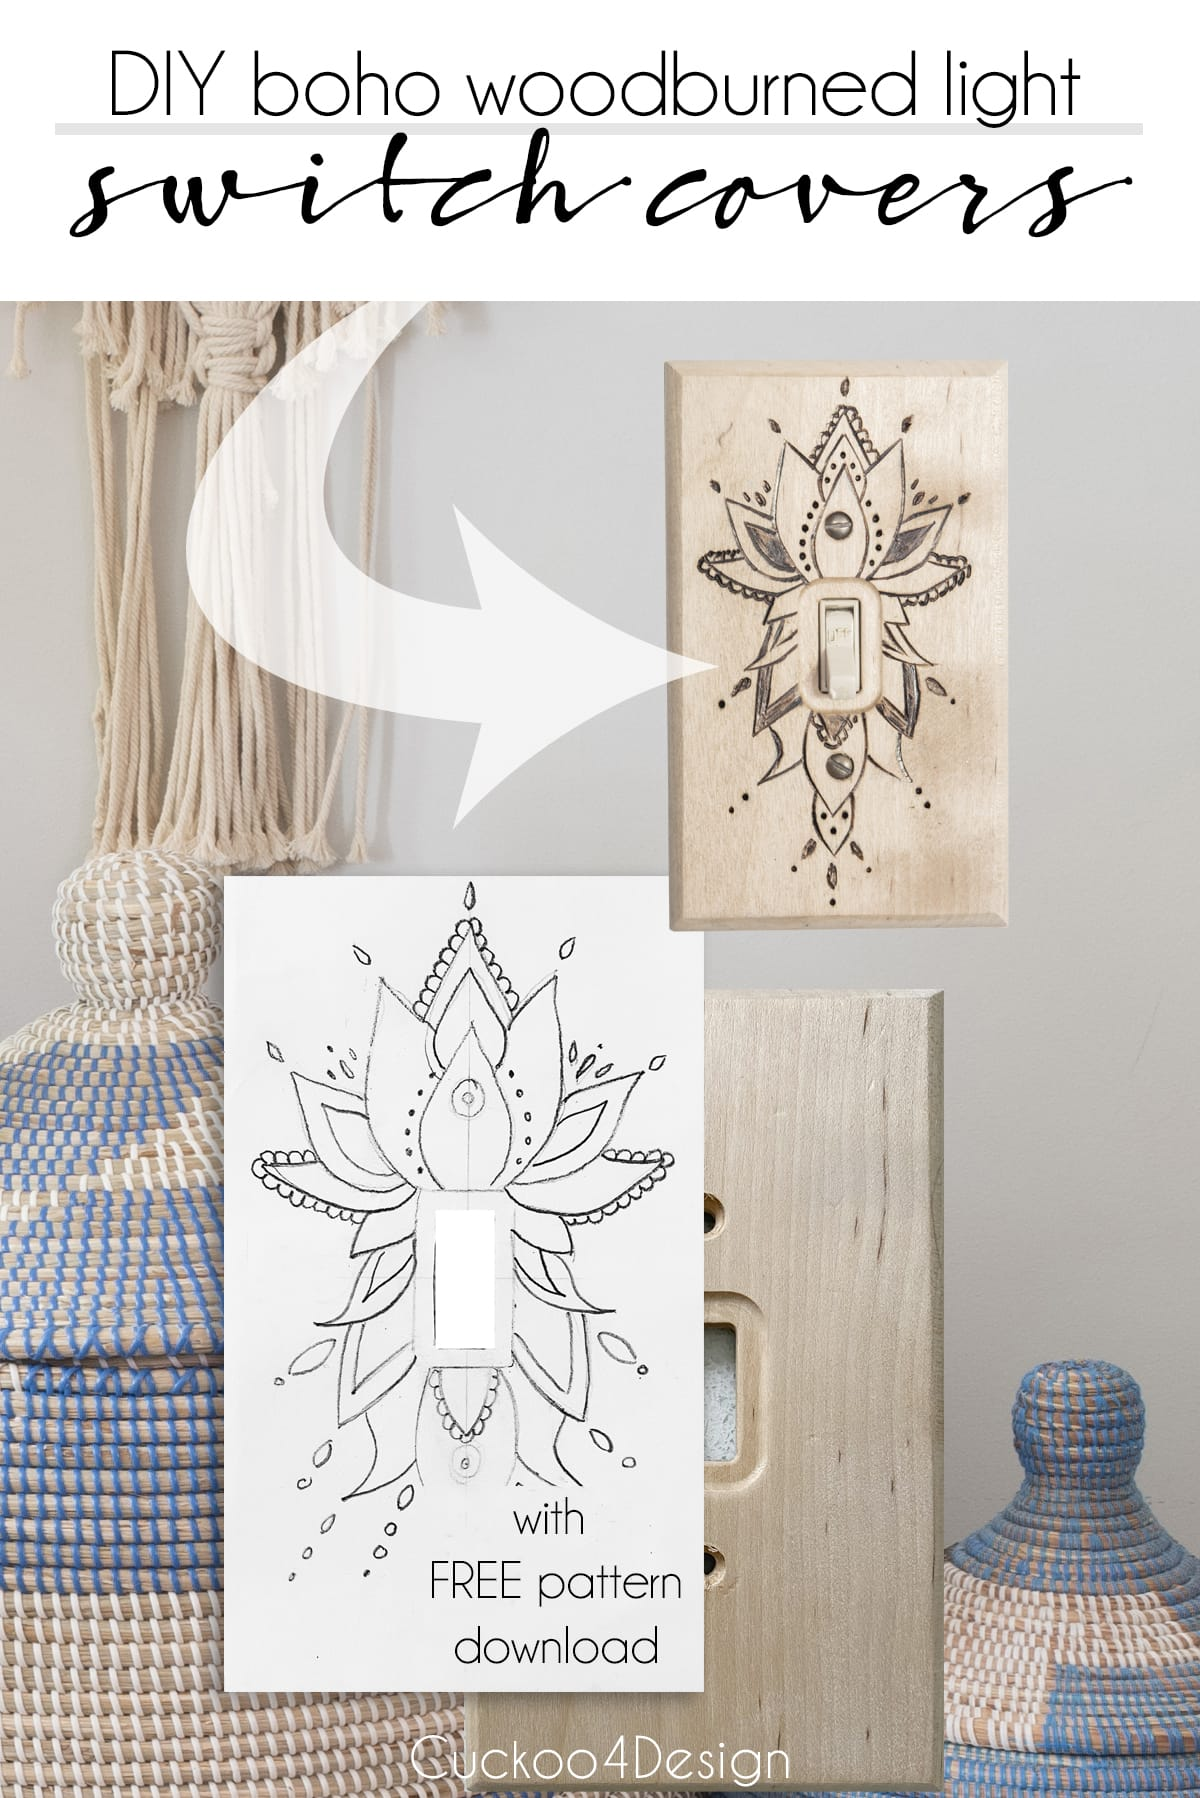 DIY boho wood burned light switch cover tutorial